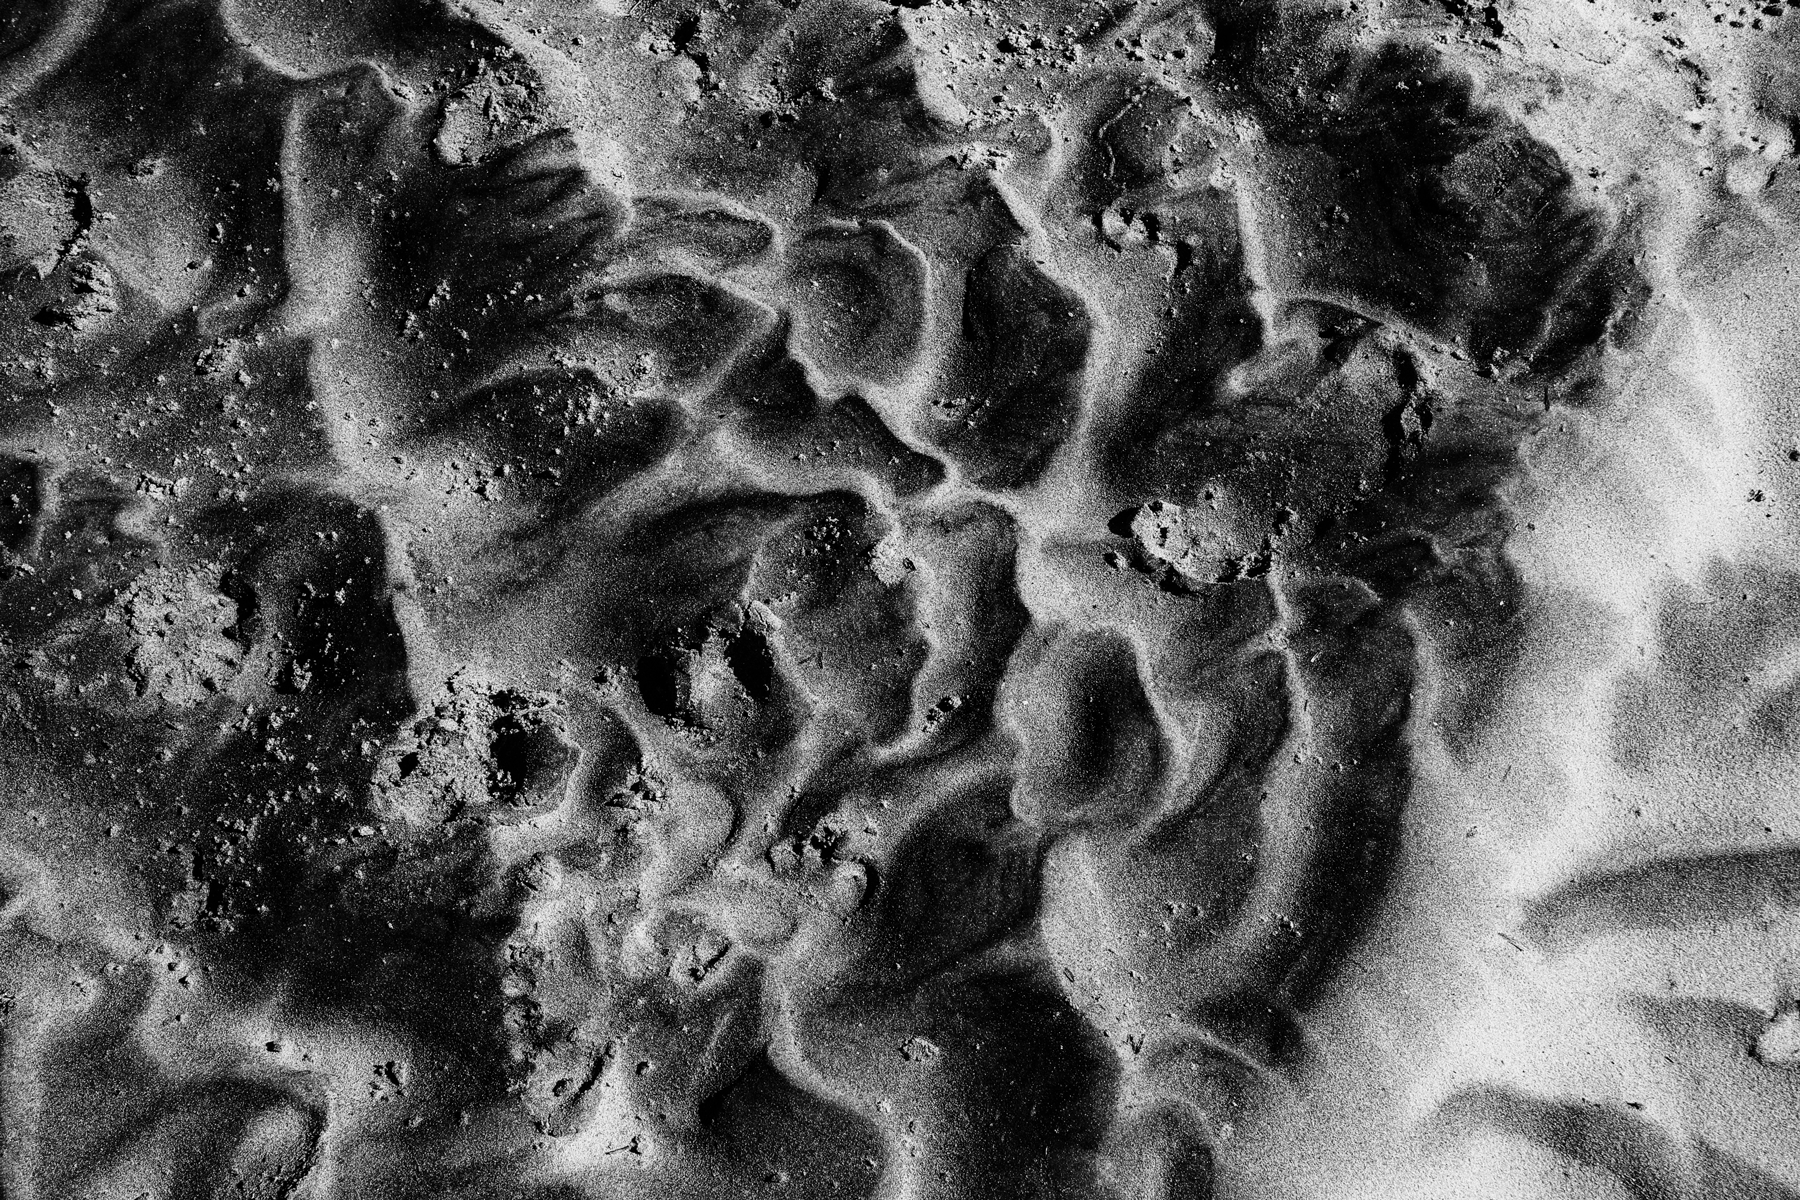 Assateague-Island-Sand-Waves-1-2017-web.png